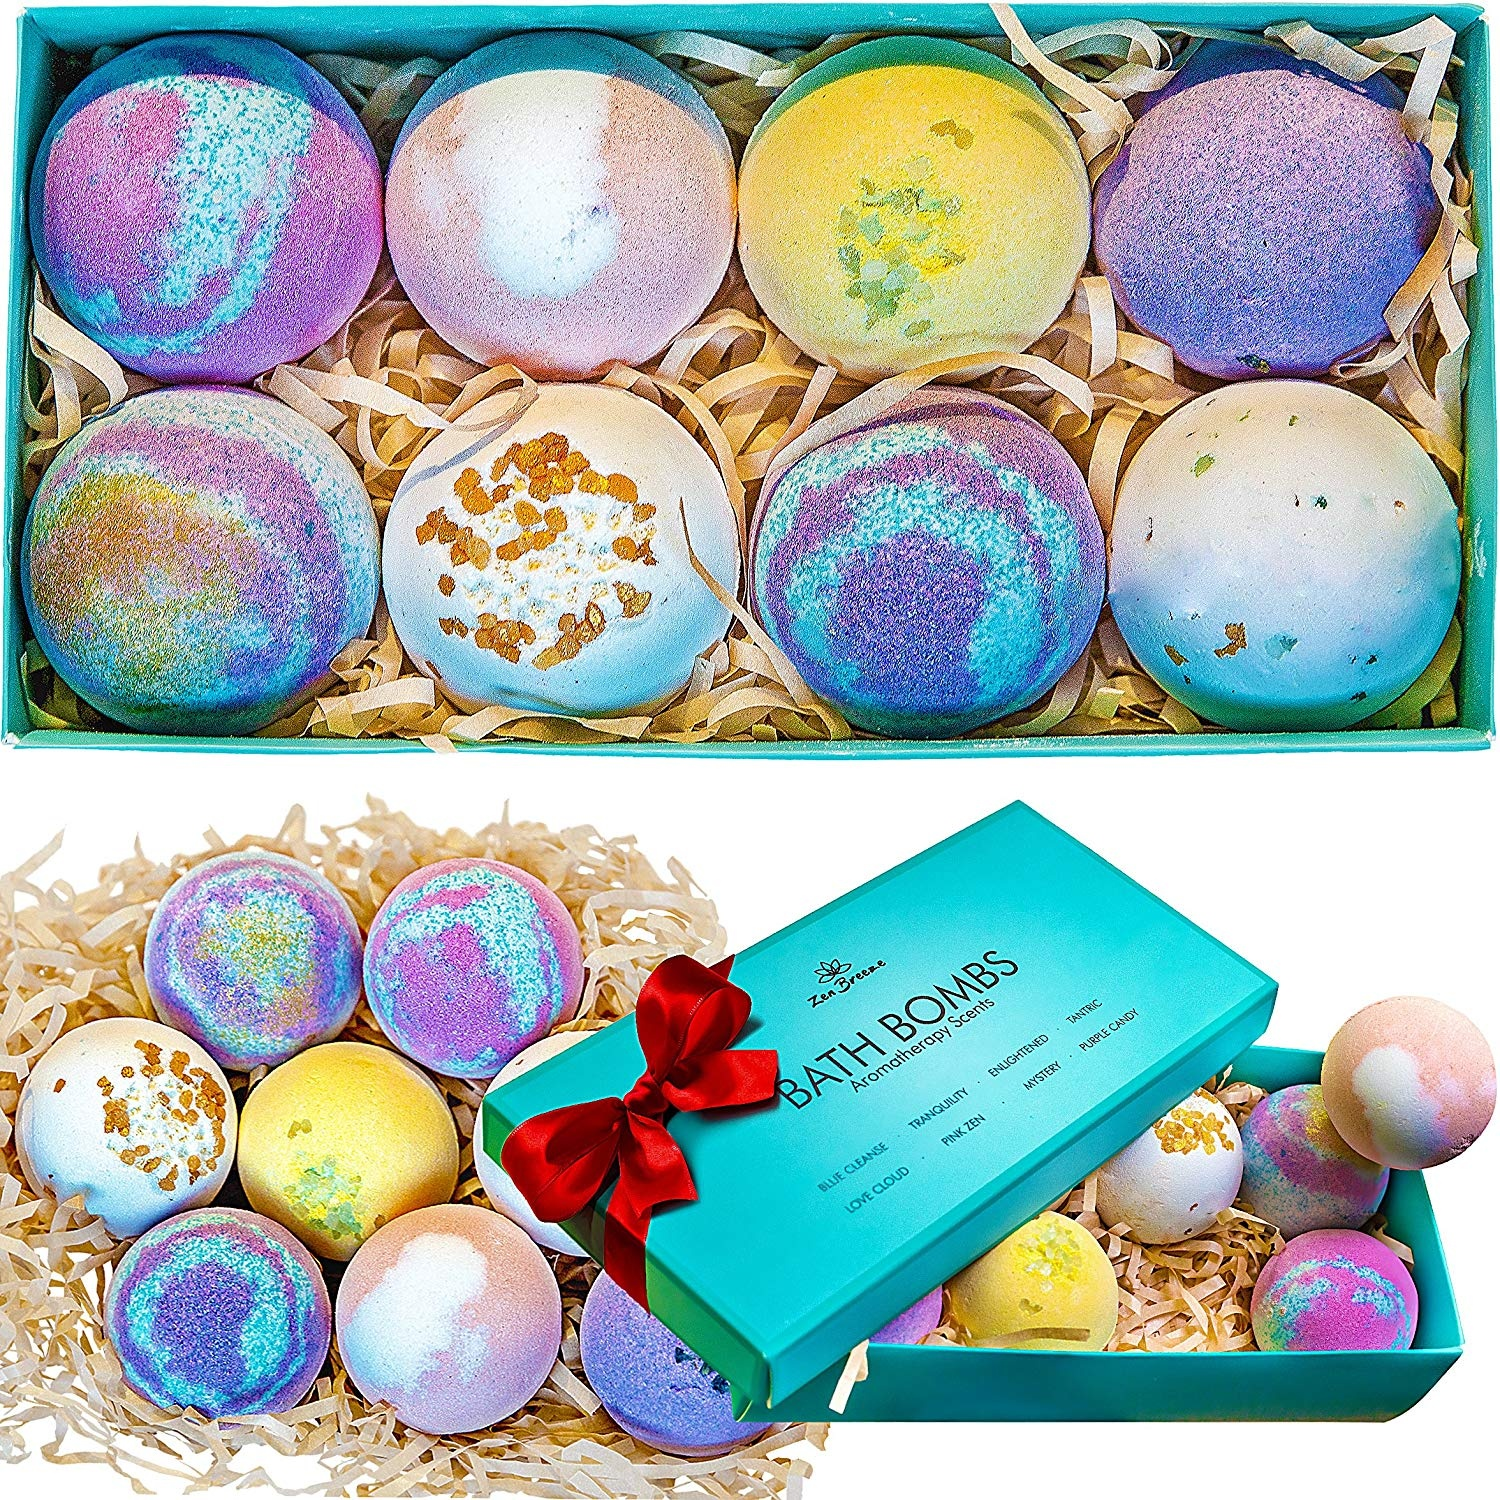 d808ec55689d8 Bath Bombs Gift Set - 8 Luxury All Vegan Bubble Fizzies For Women,  Relaxation Bath Bomb Kit - Relaxing Spa Gifts For Her - Unique Birthday &  Beauty ...